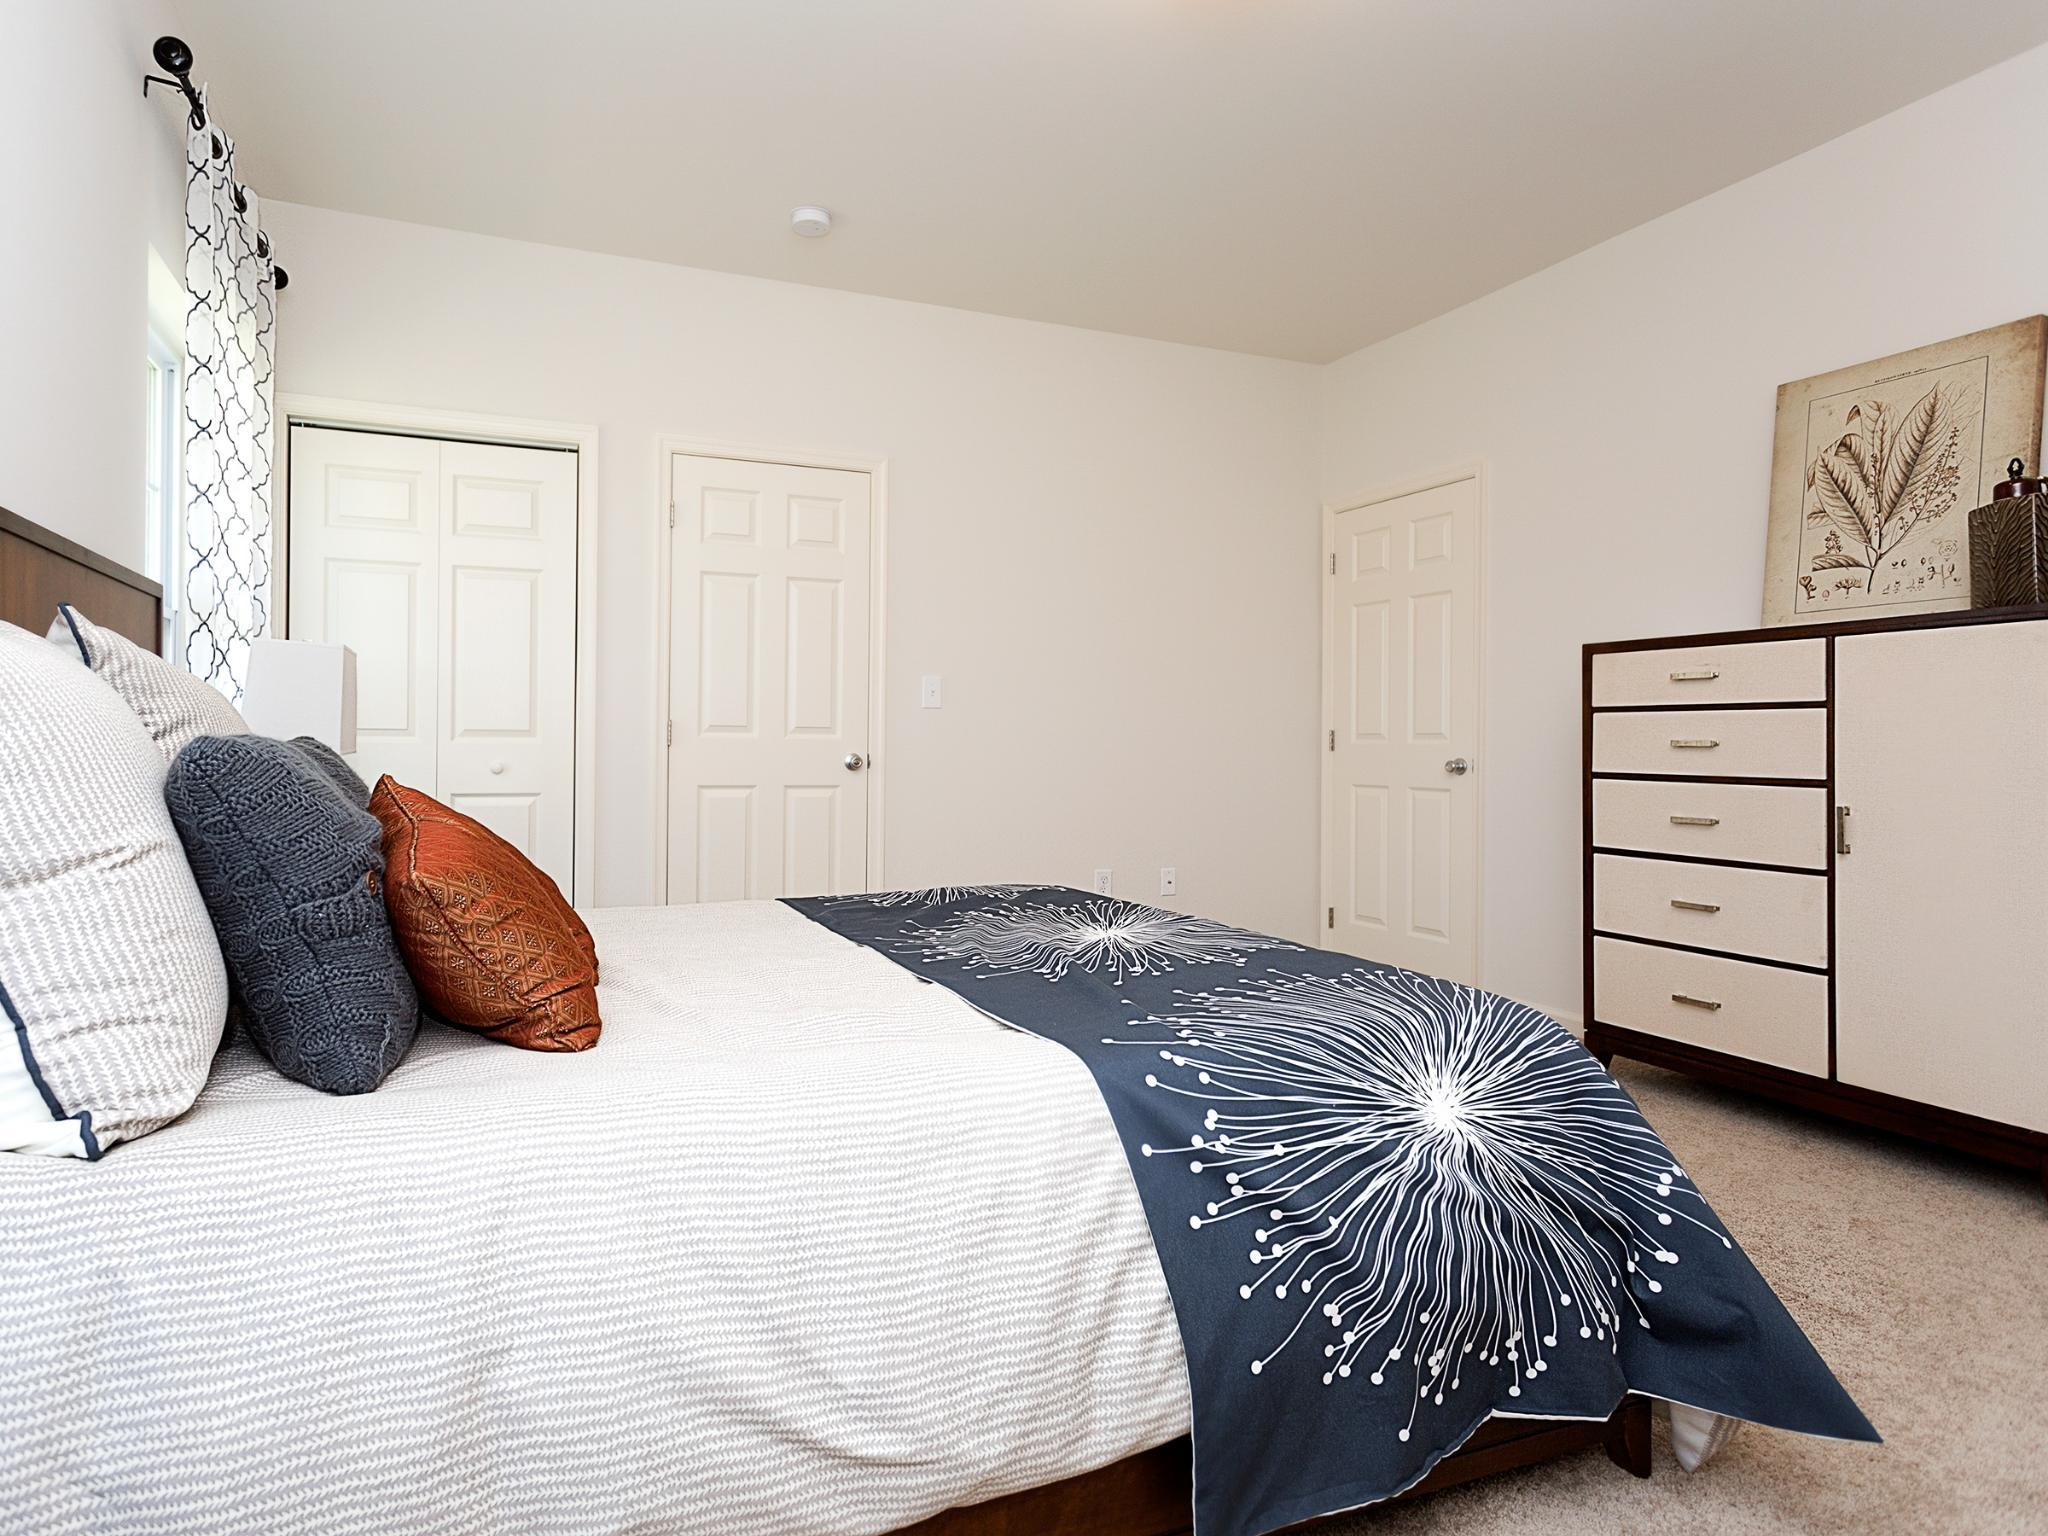 Bedroom featured in the St. Andrews Traditional By Tuskes Homes in Scranton-Wilkes-Barre, PA